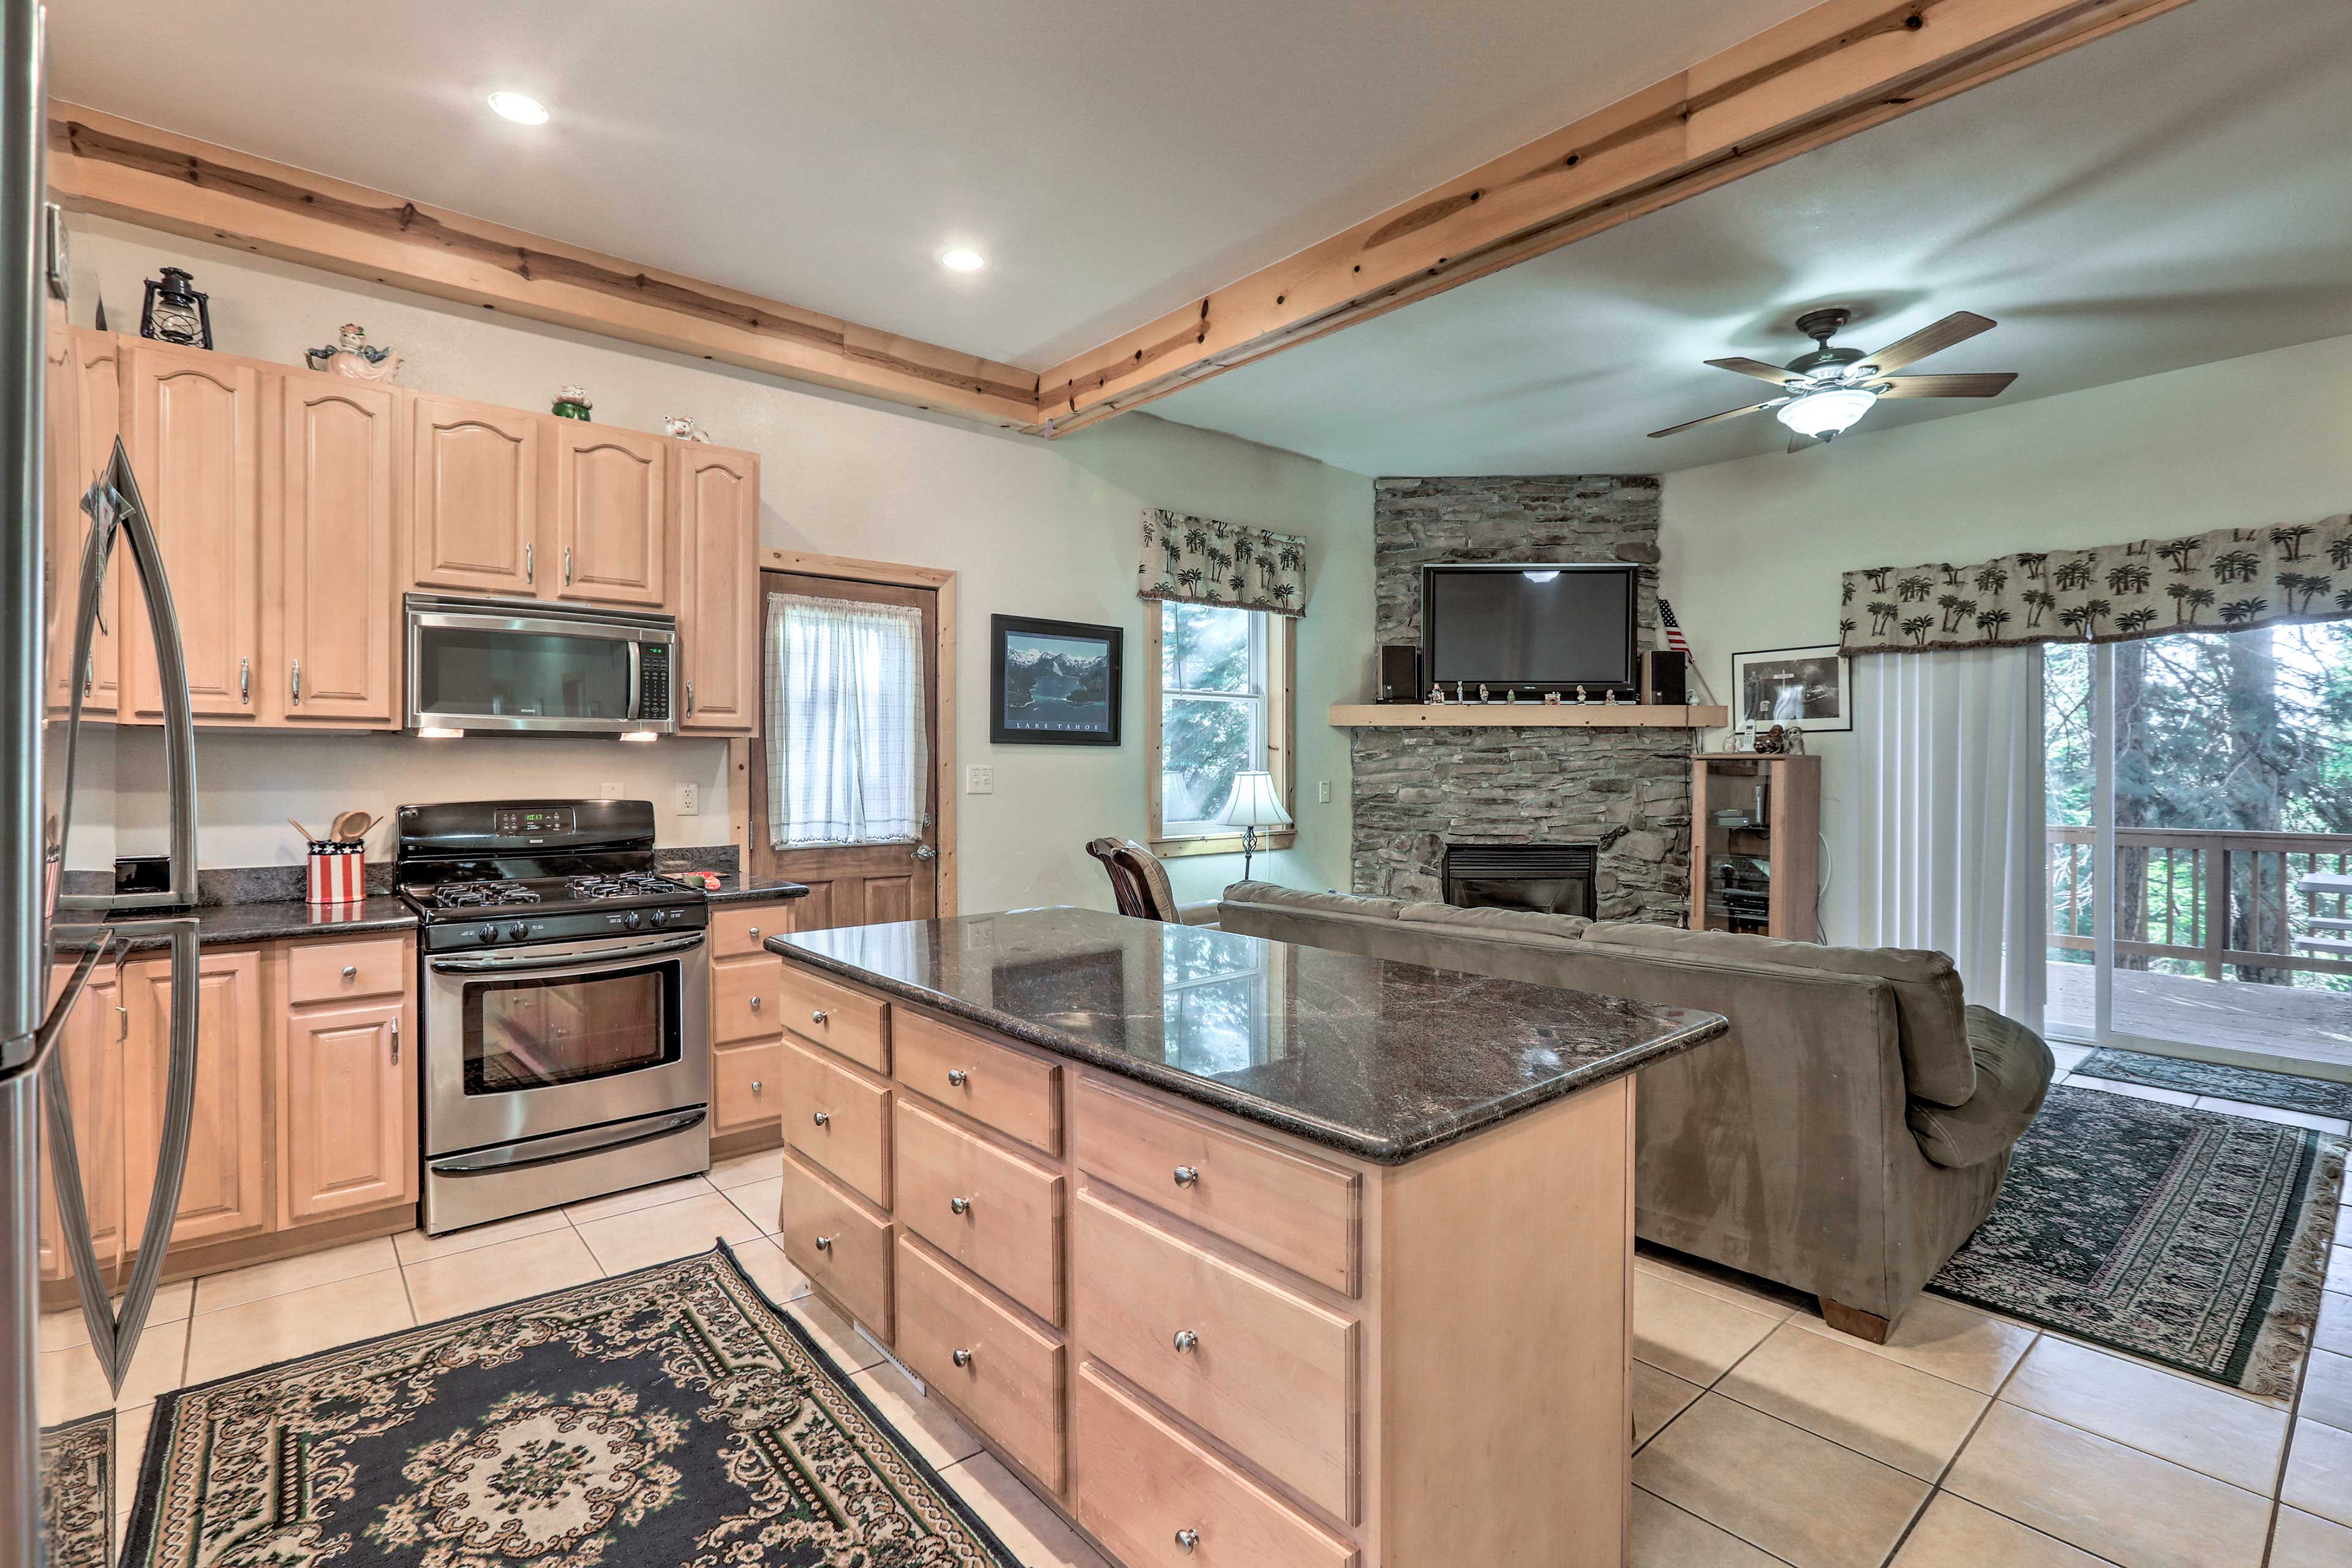 Try out a new recipe in the fully equipped kitchen with granite countertops.